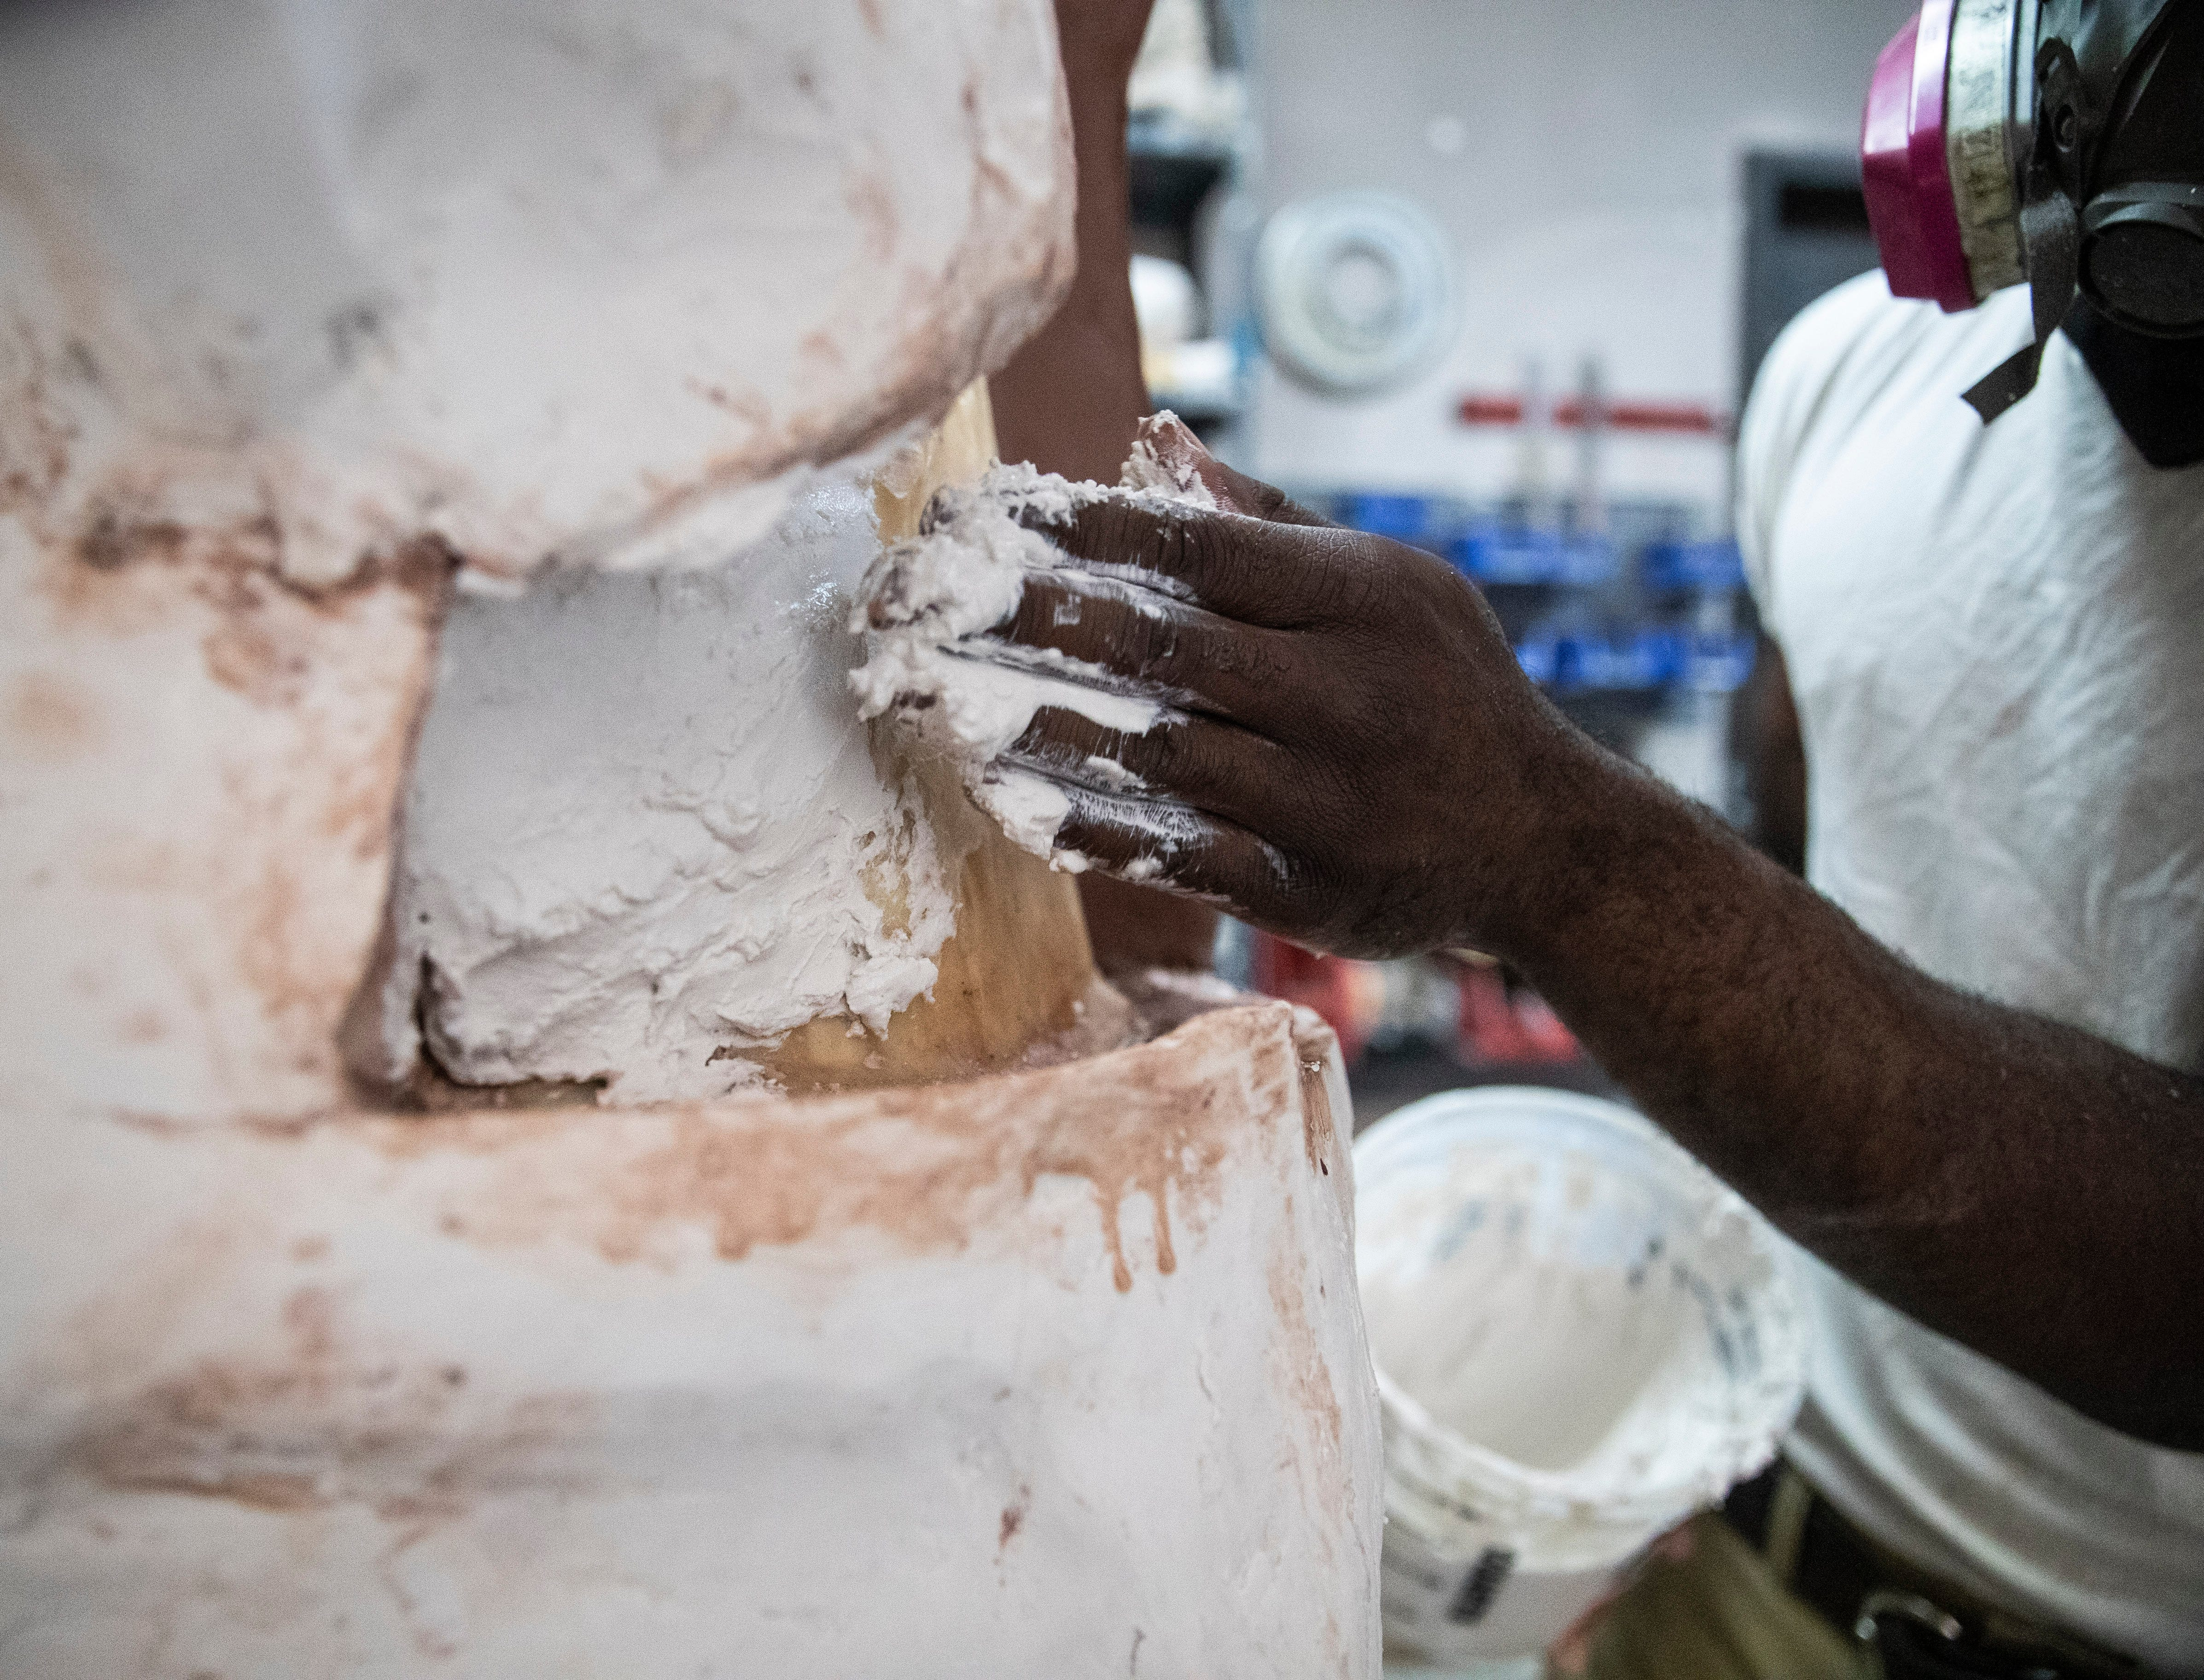 The team uses a two-part liquid rubber to cover the entire clay statue. Because the rubber is flexible, they make a plaster to cover the rubber.